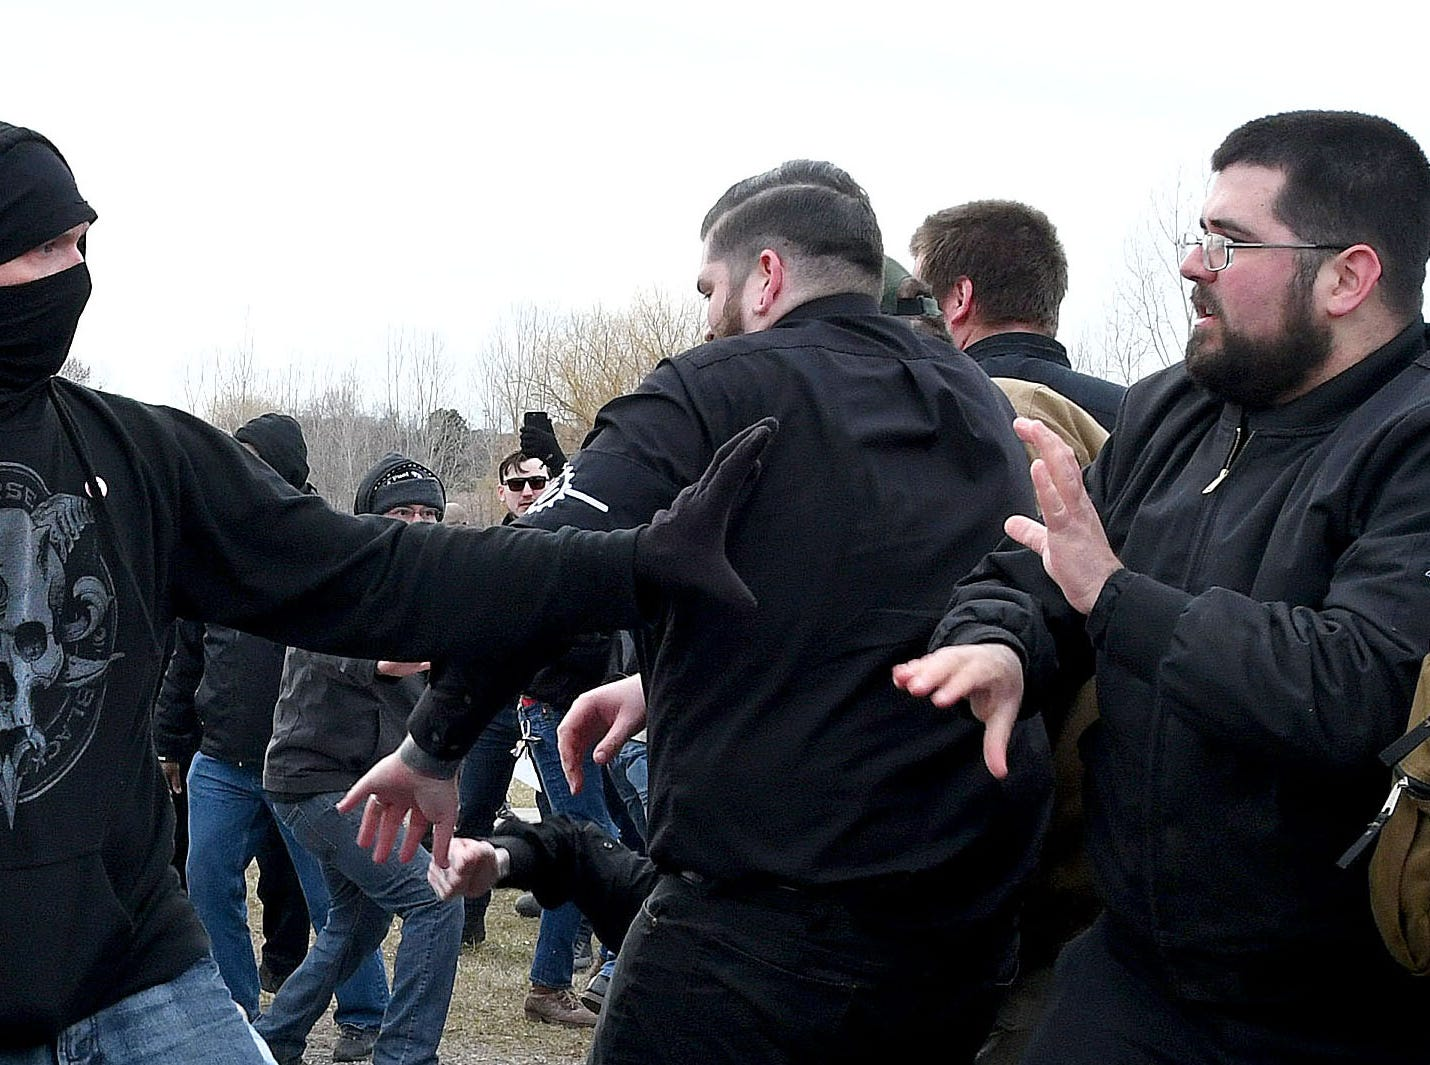 An ANTIFA protester, left, attacks white nationalist Matthew Heimbach, March 5, 2018, during the demonstration outside the MSU Pavilion on the East Lansing campus.  Police estimated 500 people turned out to protest Richard Spencer's speech on campus. When a group of Spencer supporters attempted to march through the crowd, the melee broke out.